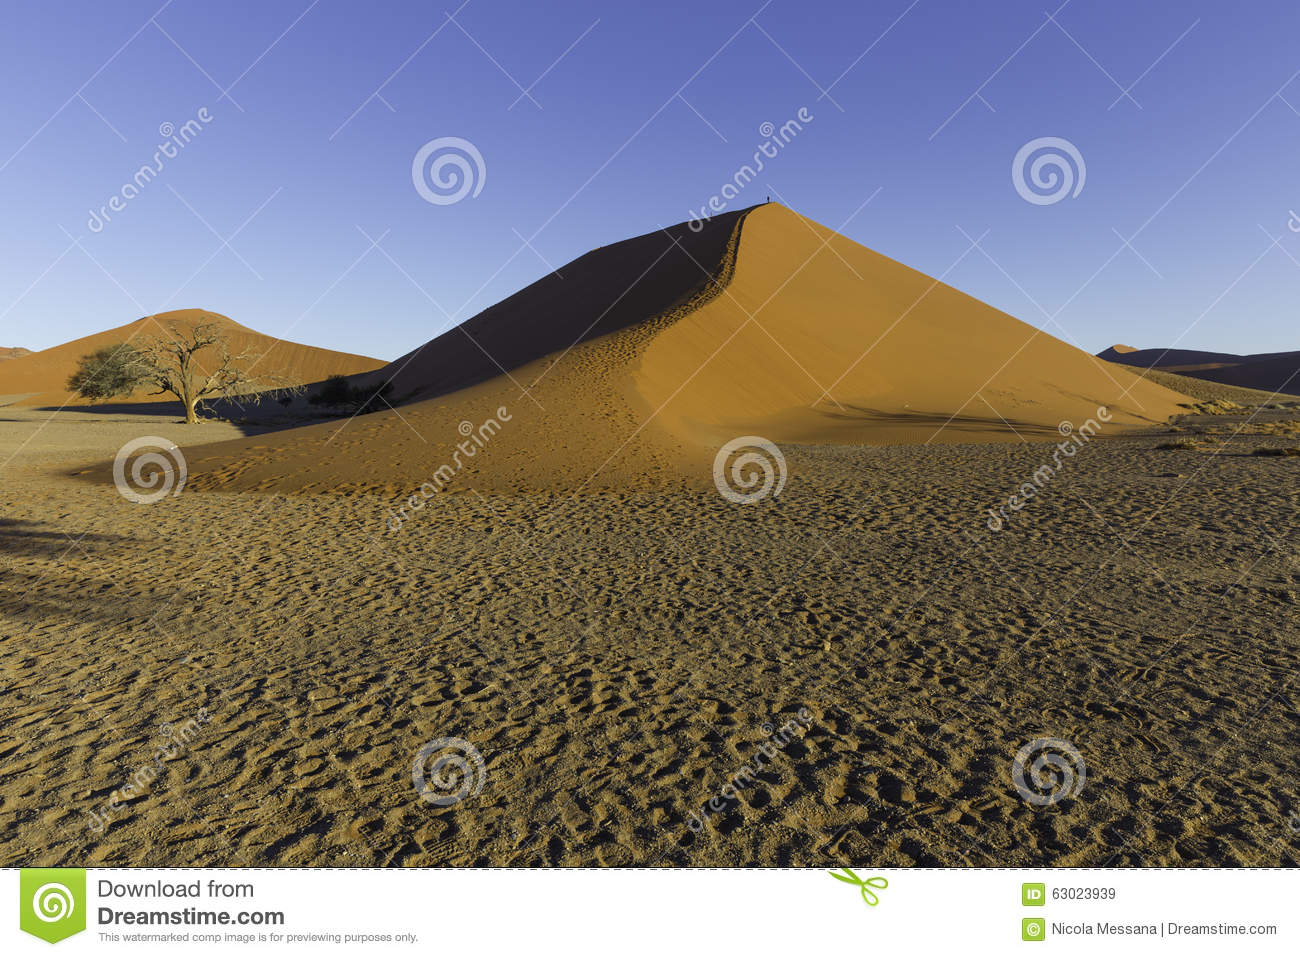 The Dune 45 In The Namib Desert, Sossusvlei, Namibia Stock Photo.